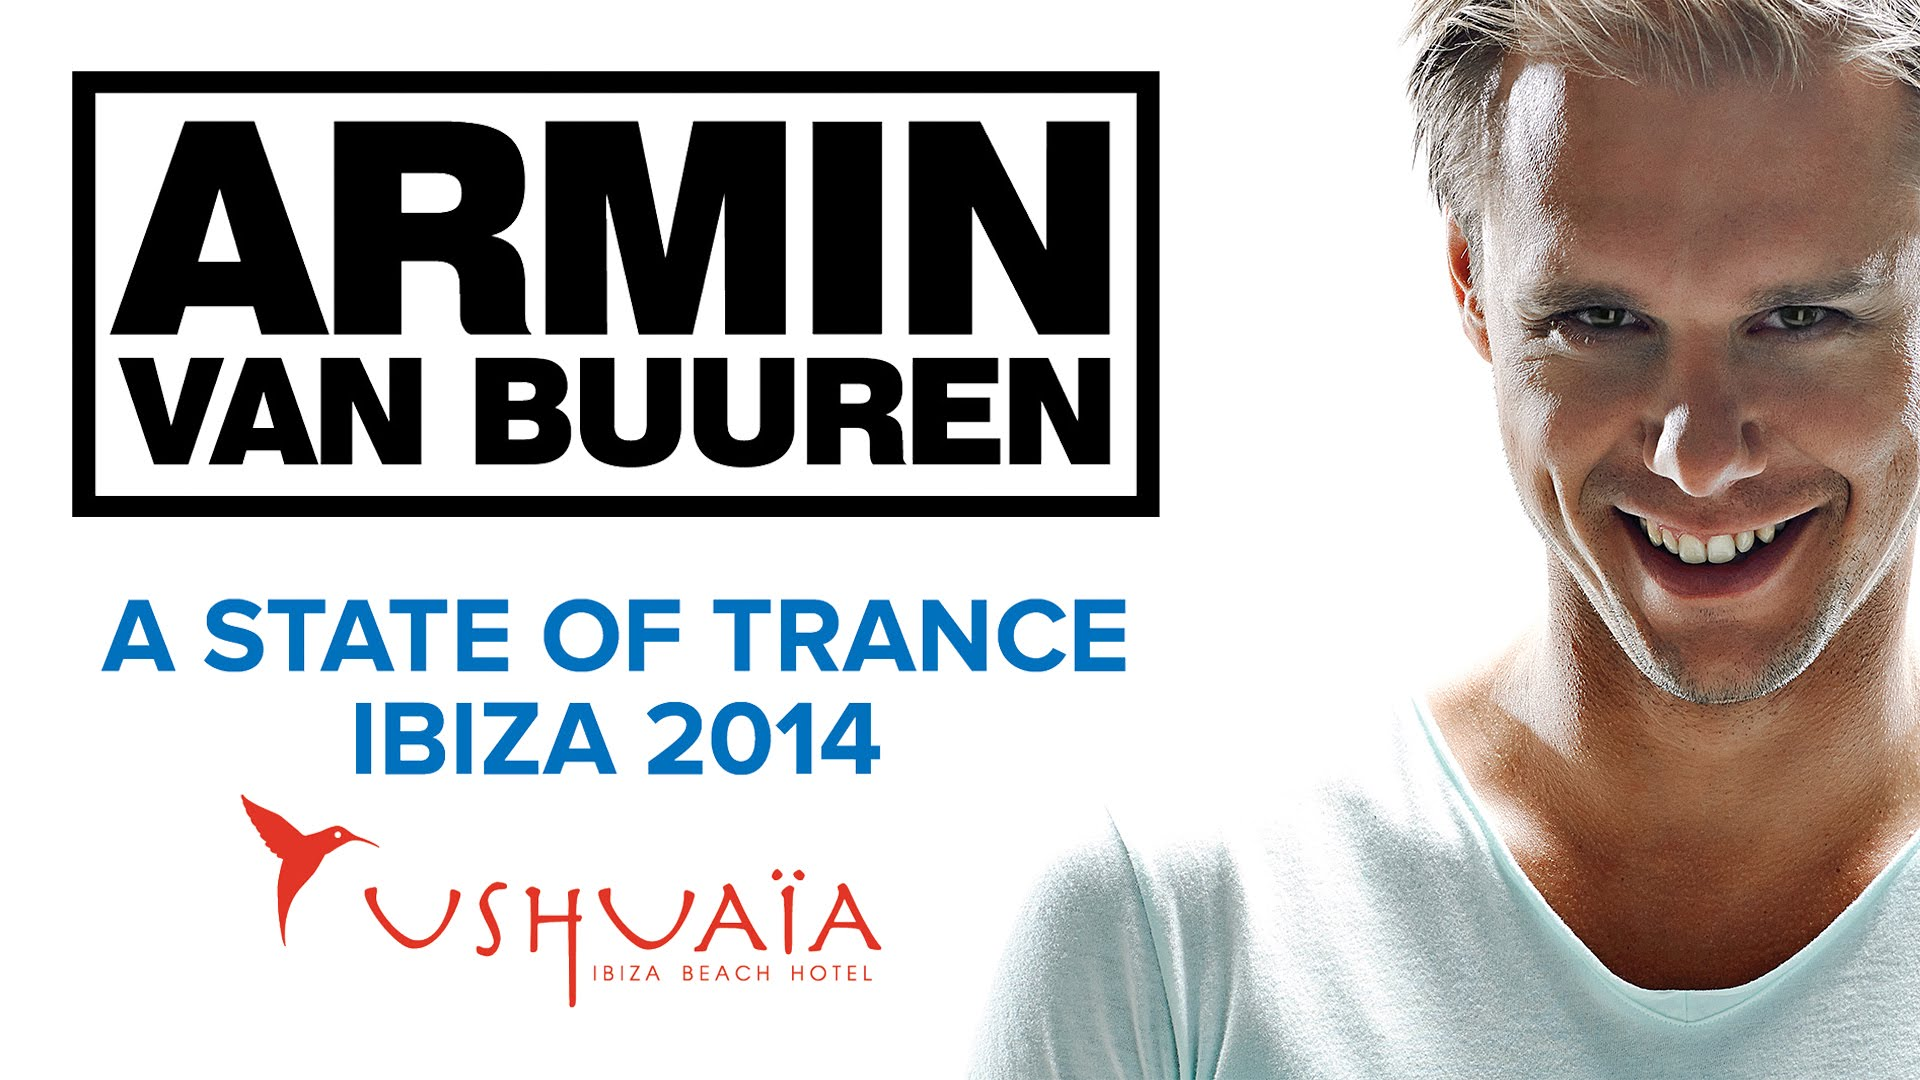 Heatbeat – Bloody Moon (Taken from 'A State of Trance at Ushuaia, Ibiza 2014') [ASOT678]